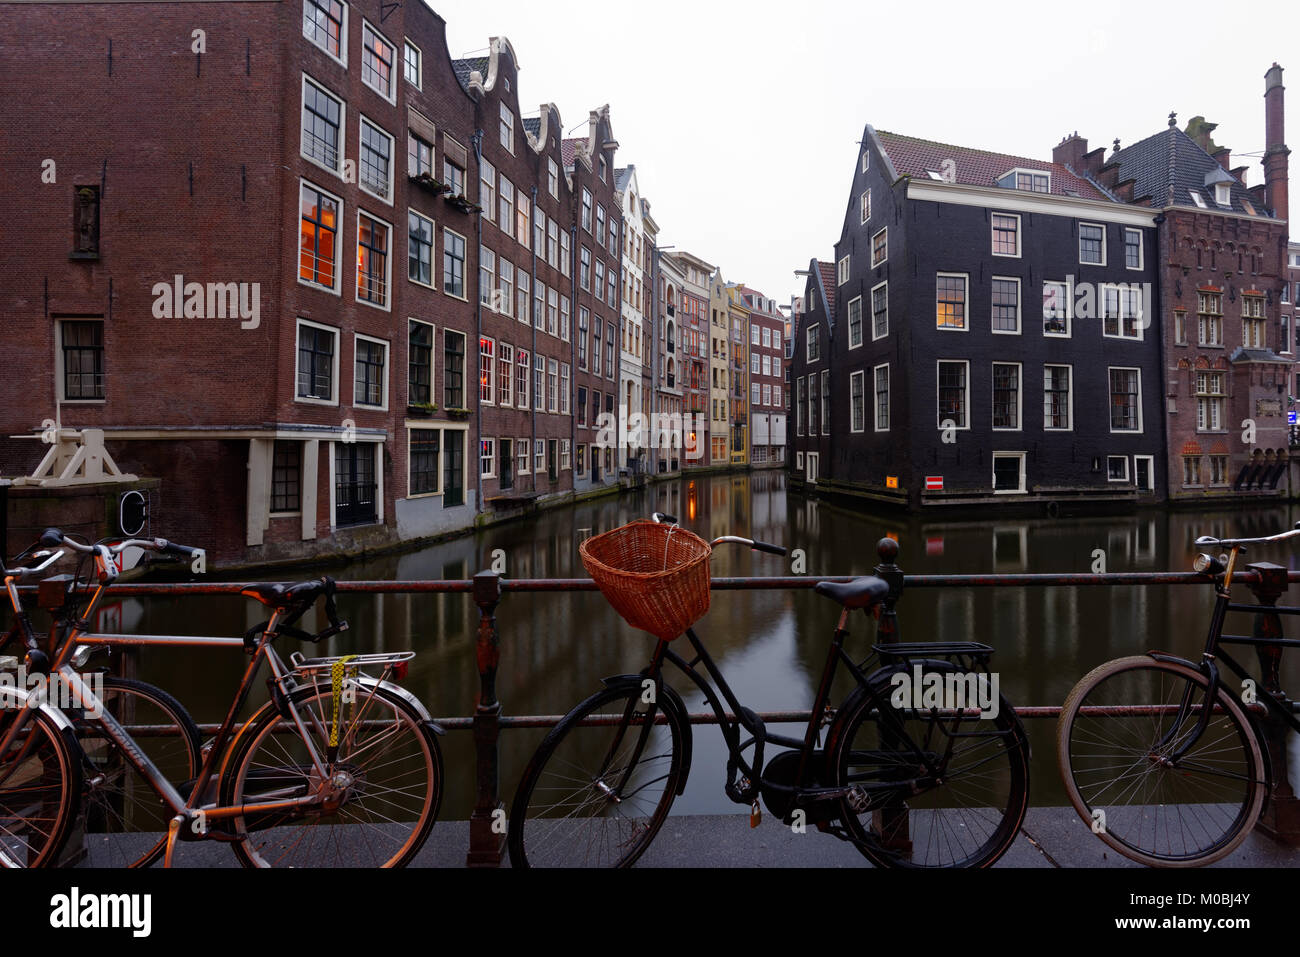 Amsterdam, Netherlands - January 1, 2017: One of canals in the historical part of city. The 17th-century canal ring - Stock Image